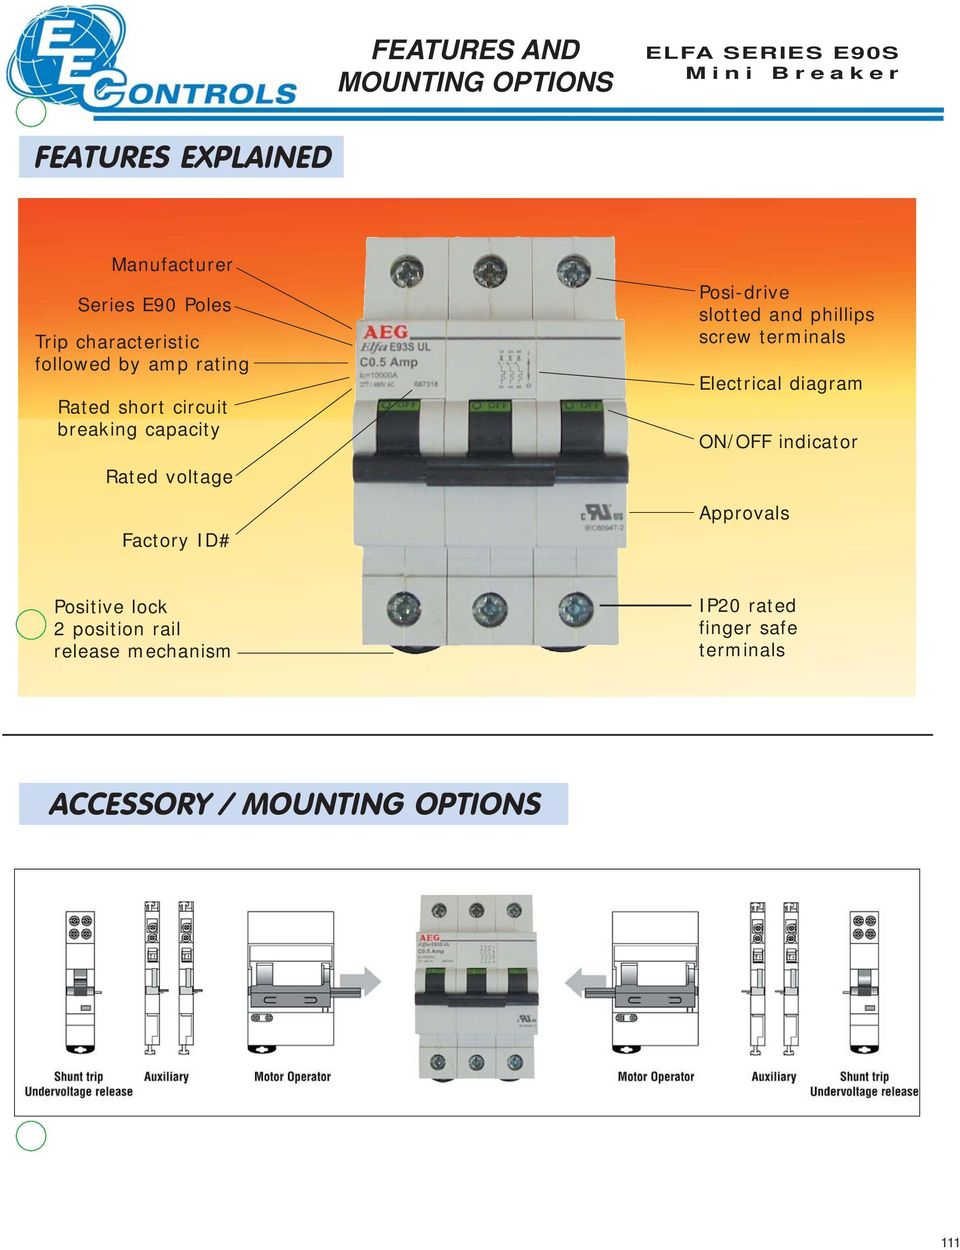 Elfa E90s Mini Breakers Pdf Aeg Motor Wiring Diagram Slotted And Phillips Screw Terminals Electrical On Off Indicator Approvals Positive Lock 2